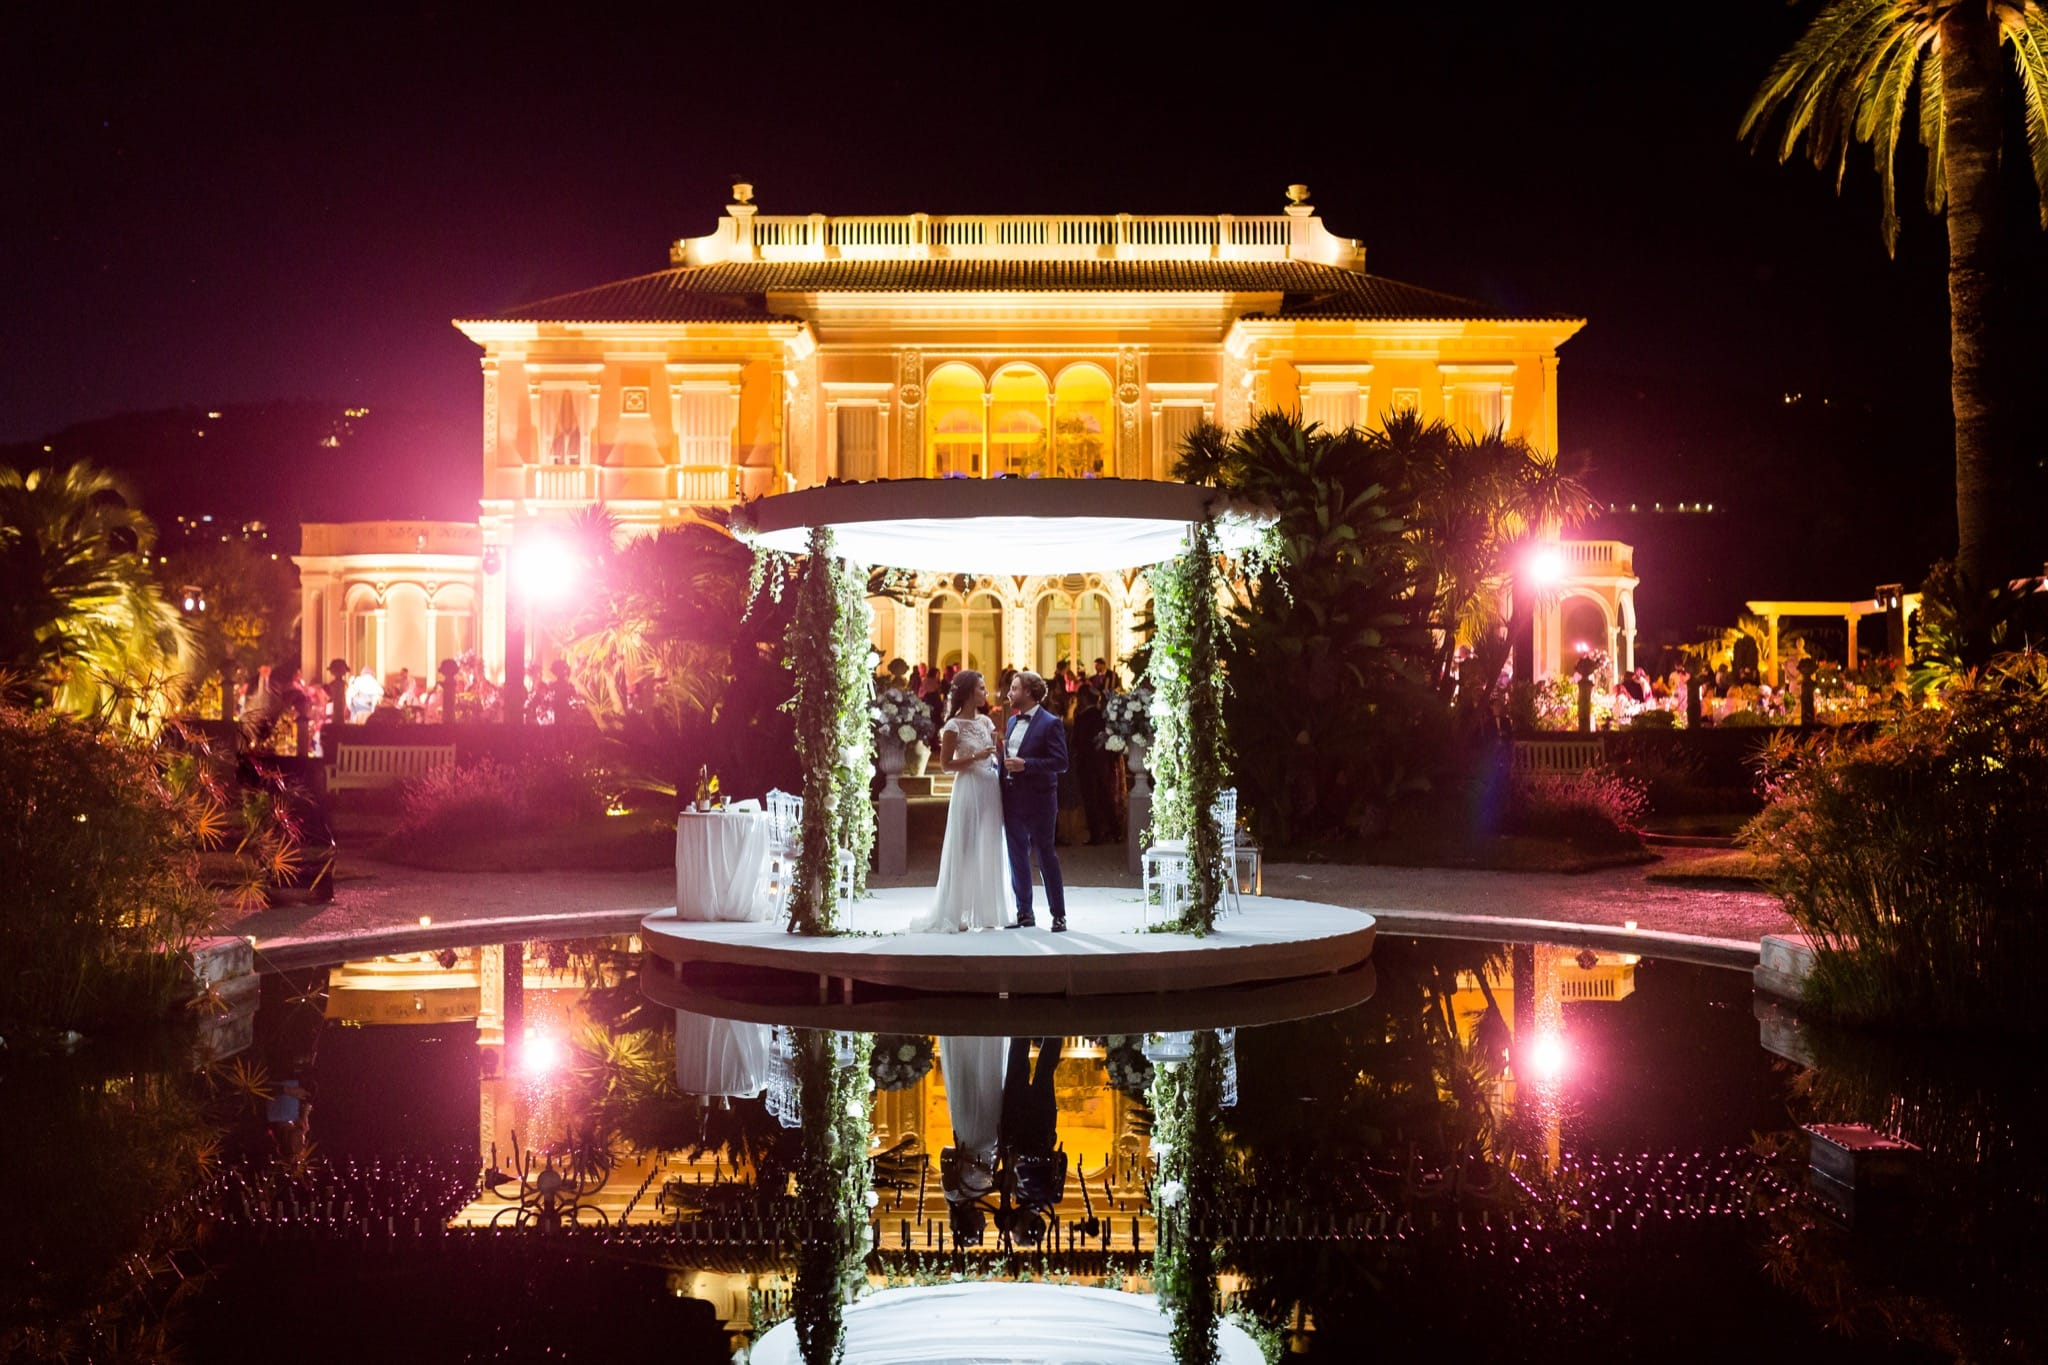 Costi-Moiceanu-Photographer-CM-Photography-Wedding-Mariage-French-Riviera-Cote-D-Azur-Alpes-Maritimes-Villa-Rothchild